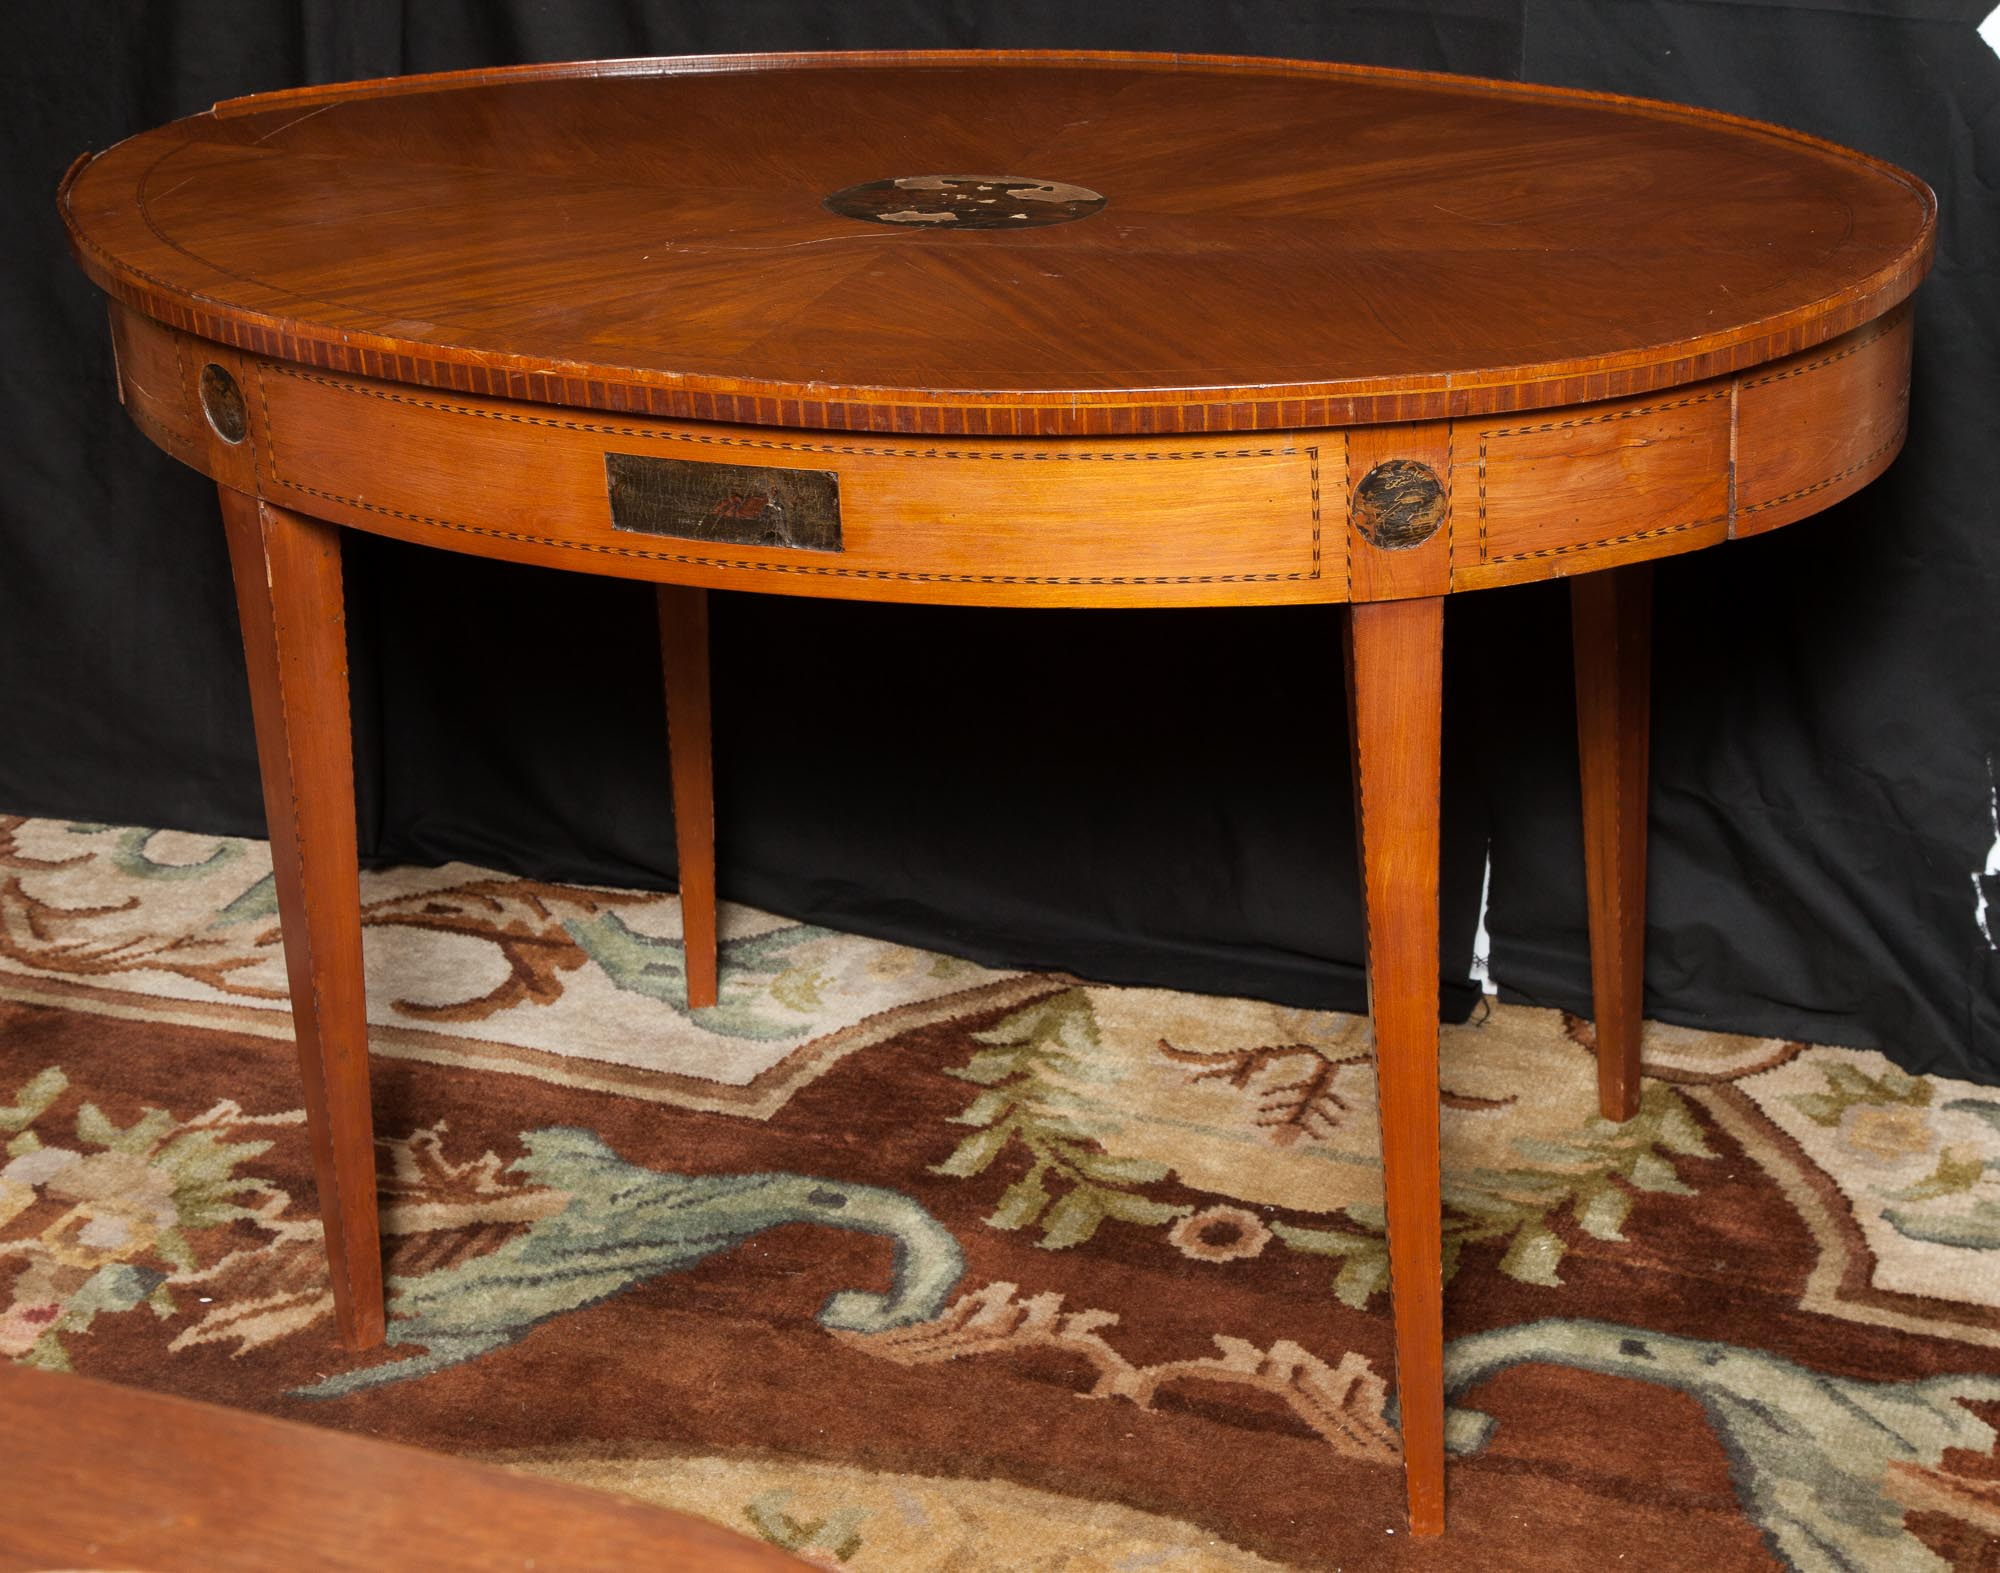 Lot image - Dutch Neoclassical Style Walnut and Marquetry Oval Table with Lacquer-Inset Panels